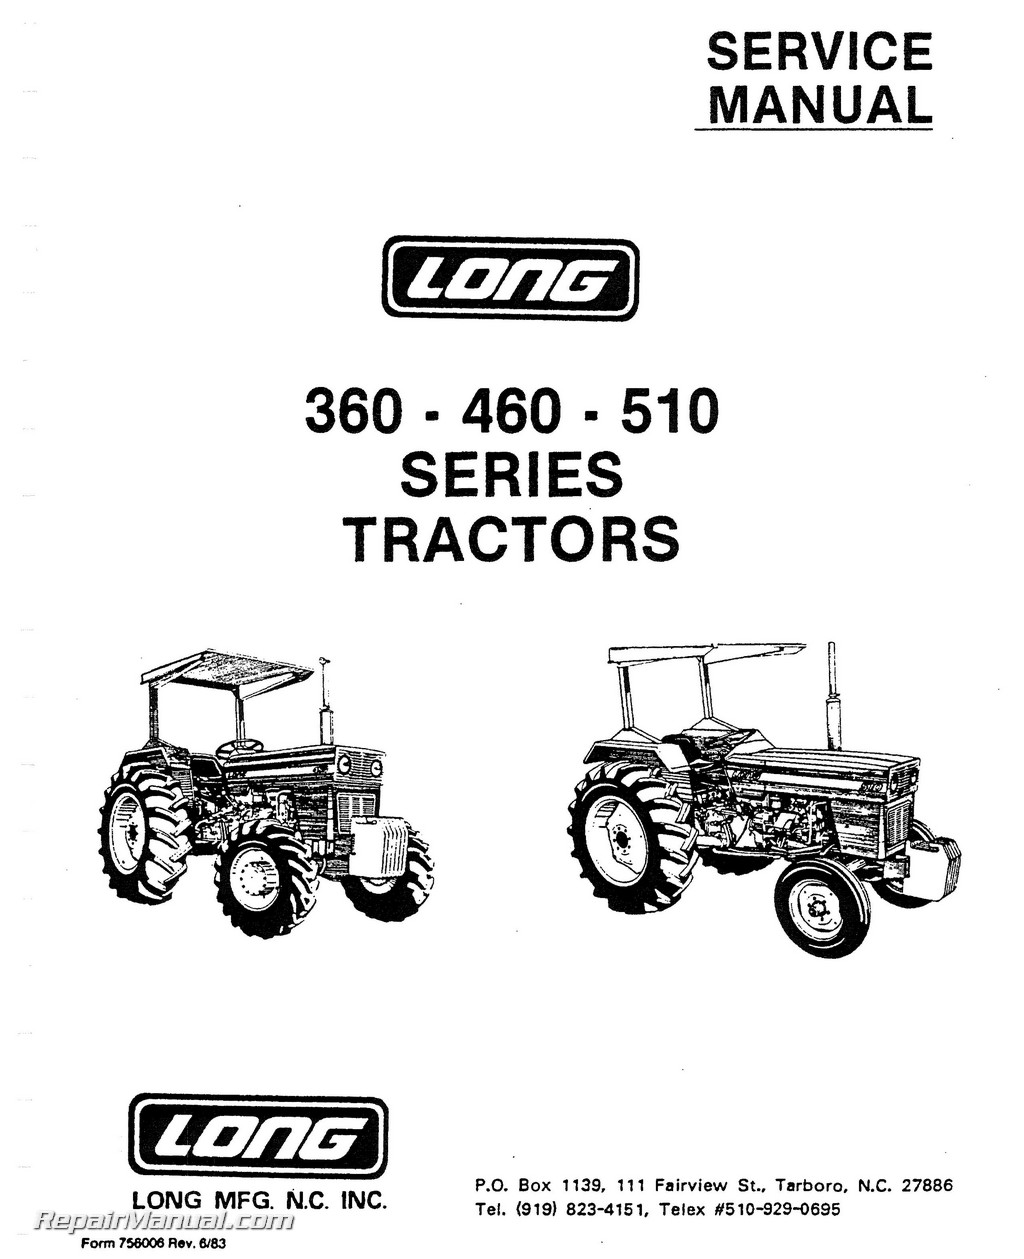 2910 Ford Tractor Wiring Diagram Ford 2600 Tractor Diagram 2910 Ford  Tractor Wiring Diagram